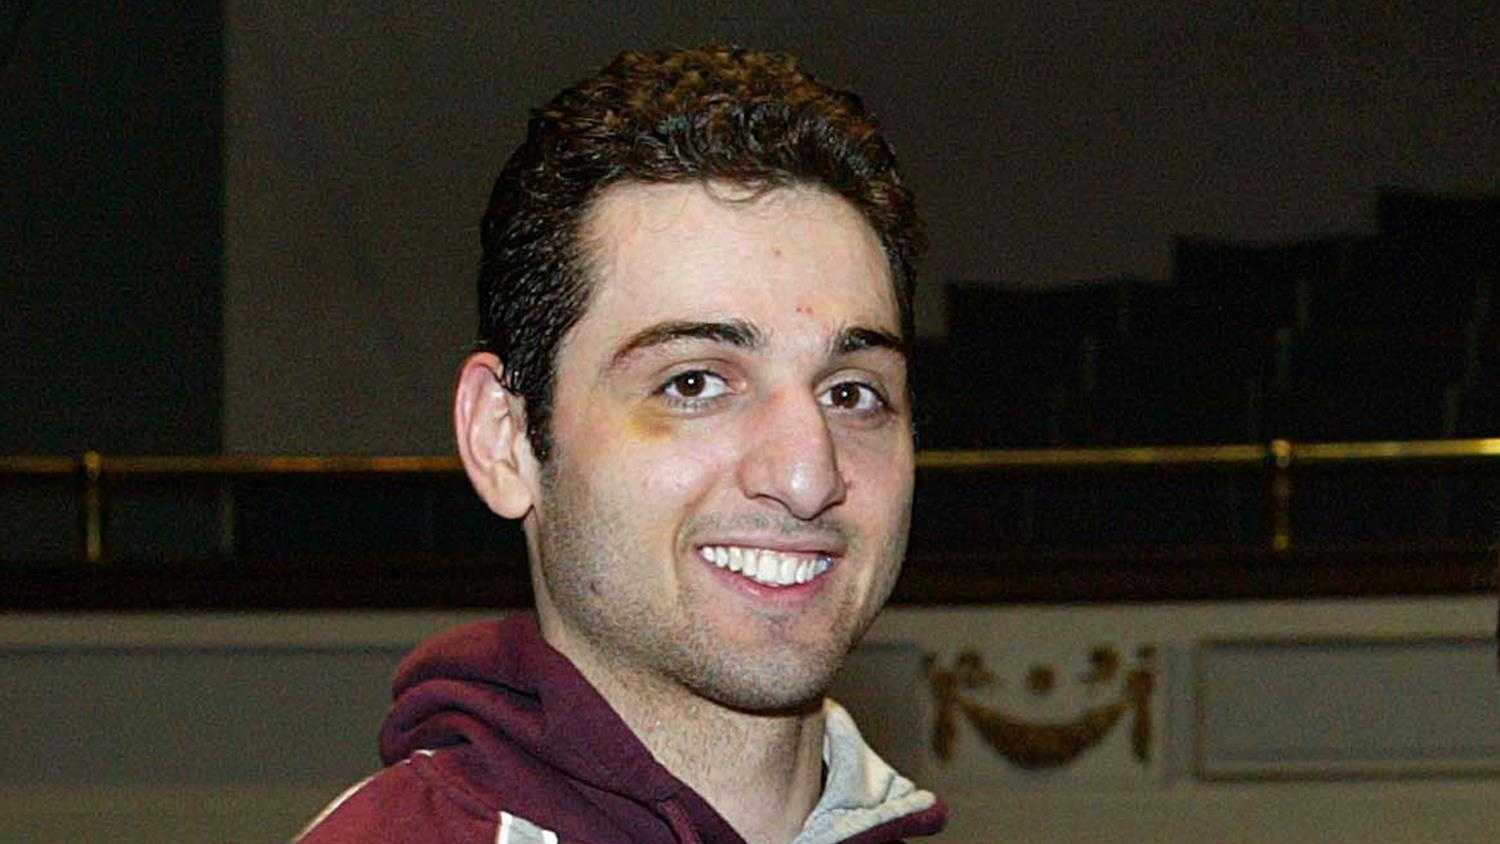 """He was the invisible kid,"" Clarke said of the younger brother, who seemed to take a backseat to Tamerlan."